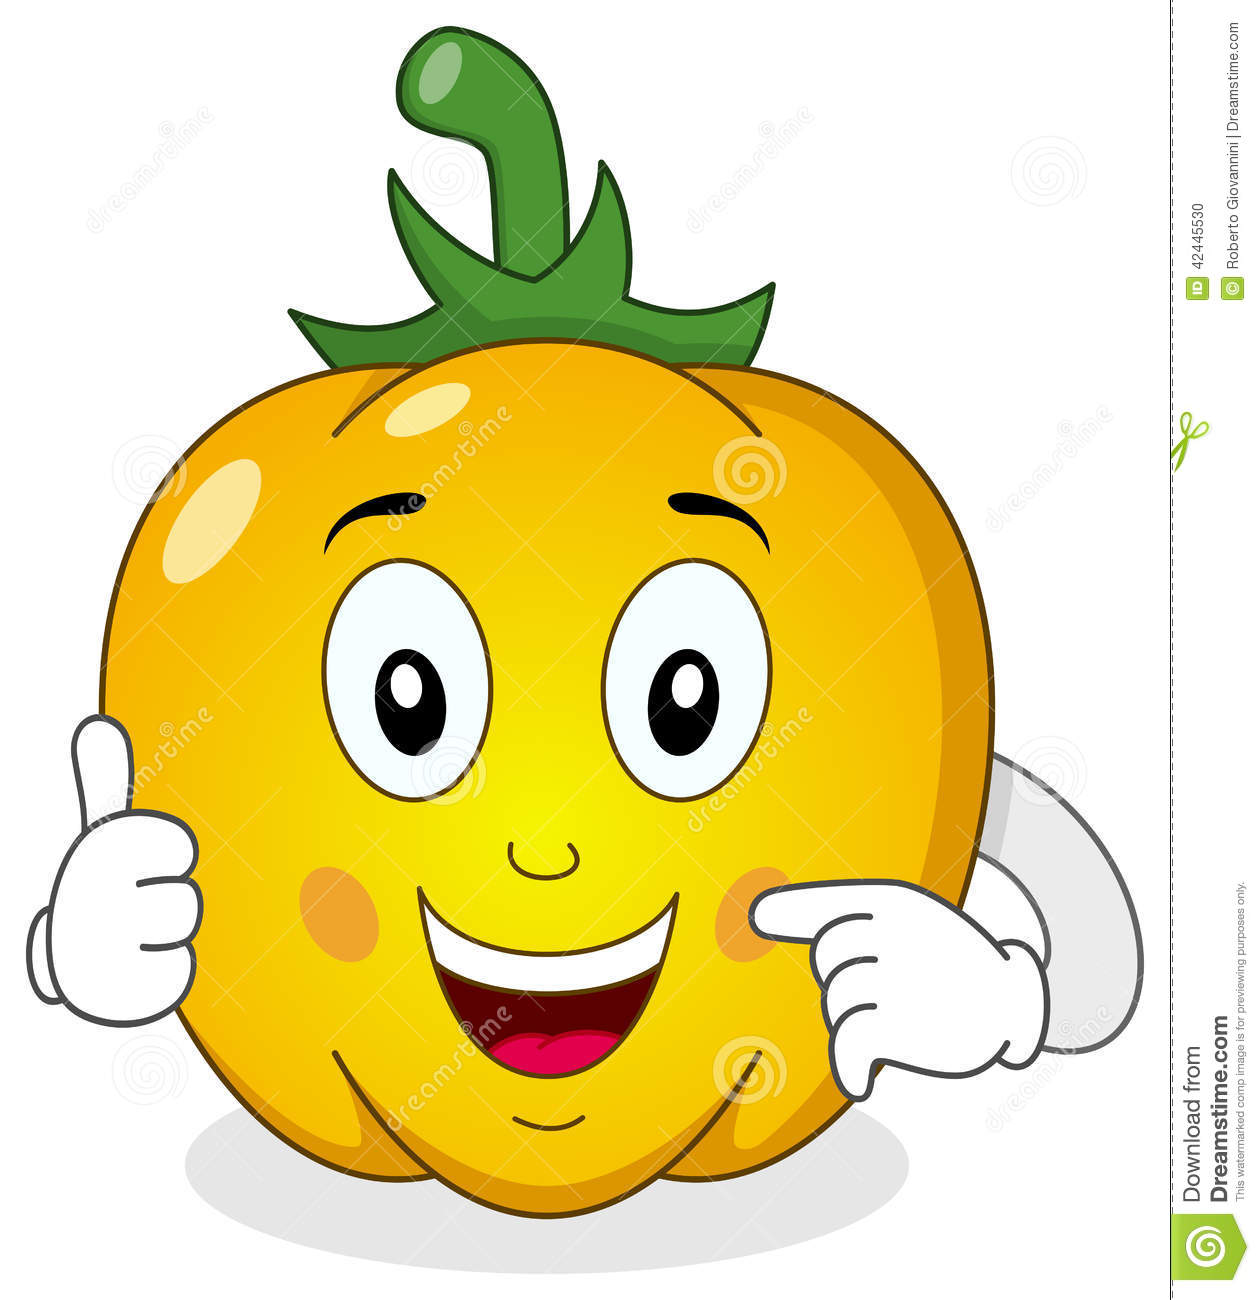 Cartoon Characters Yellow : Cheerful yellow pepper cartoon character stock vector